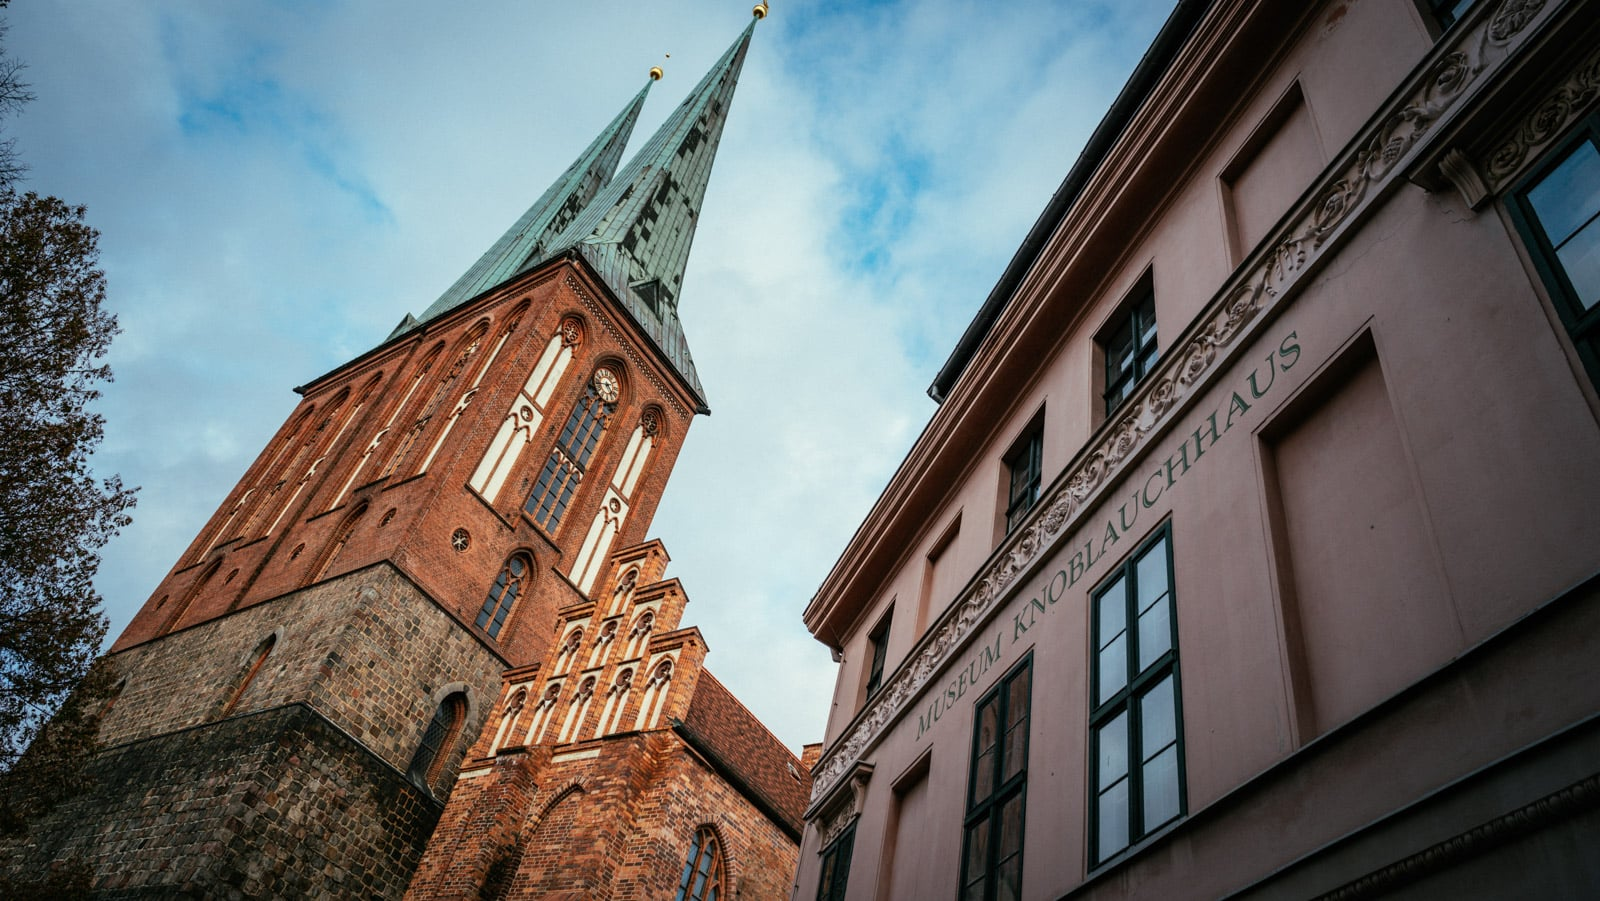 Exterior View of the Nikolaikirche